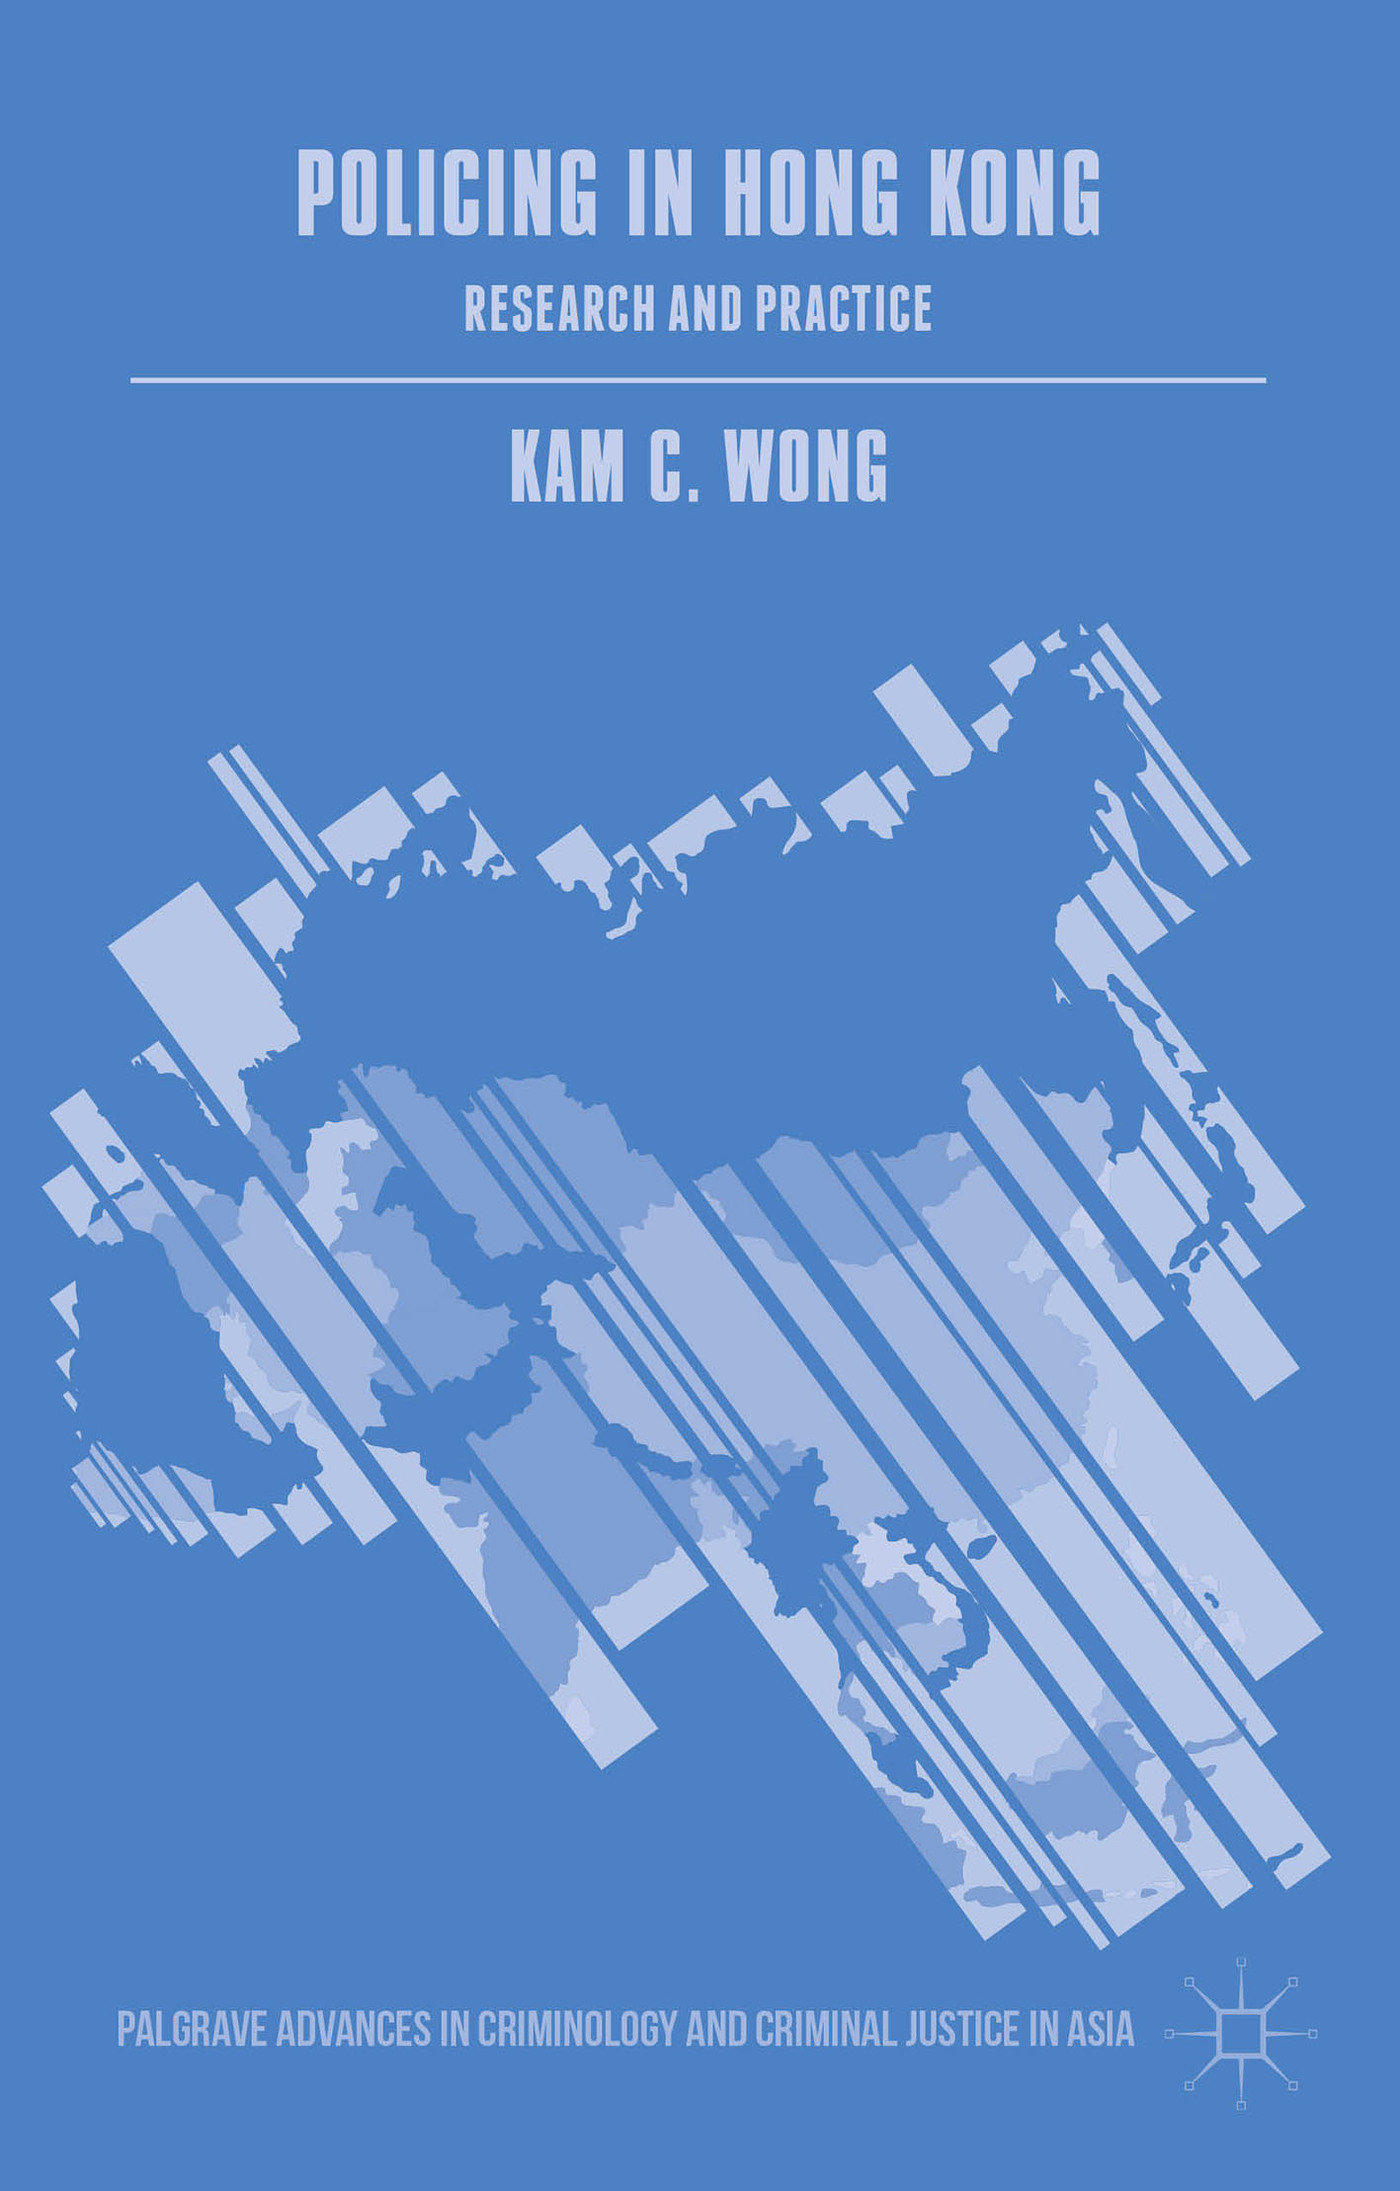 Policing in Hong Kong: Research and Practice  by  Kam C. Wong